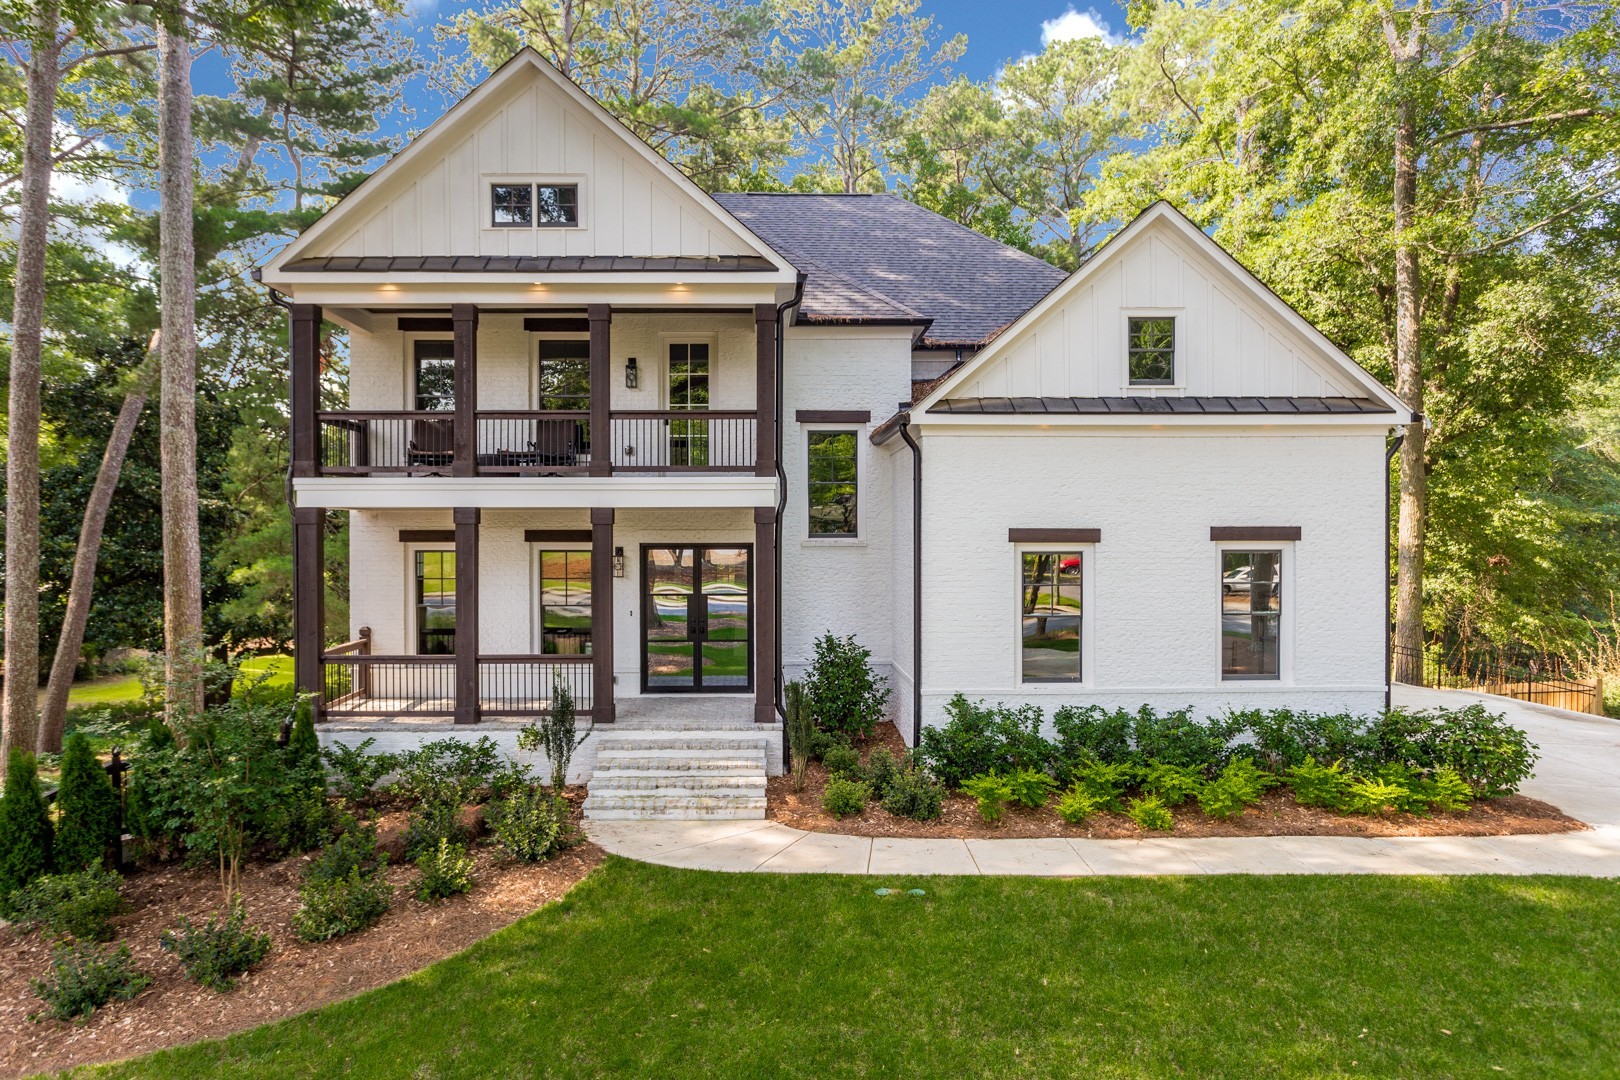 Waterford at Briarcliff_Rocklyn Homes_Exterior prof. pic__003-1433 30324_LO-RES.jpg